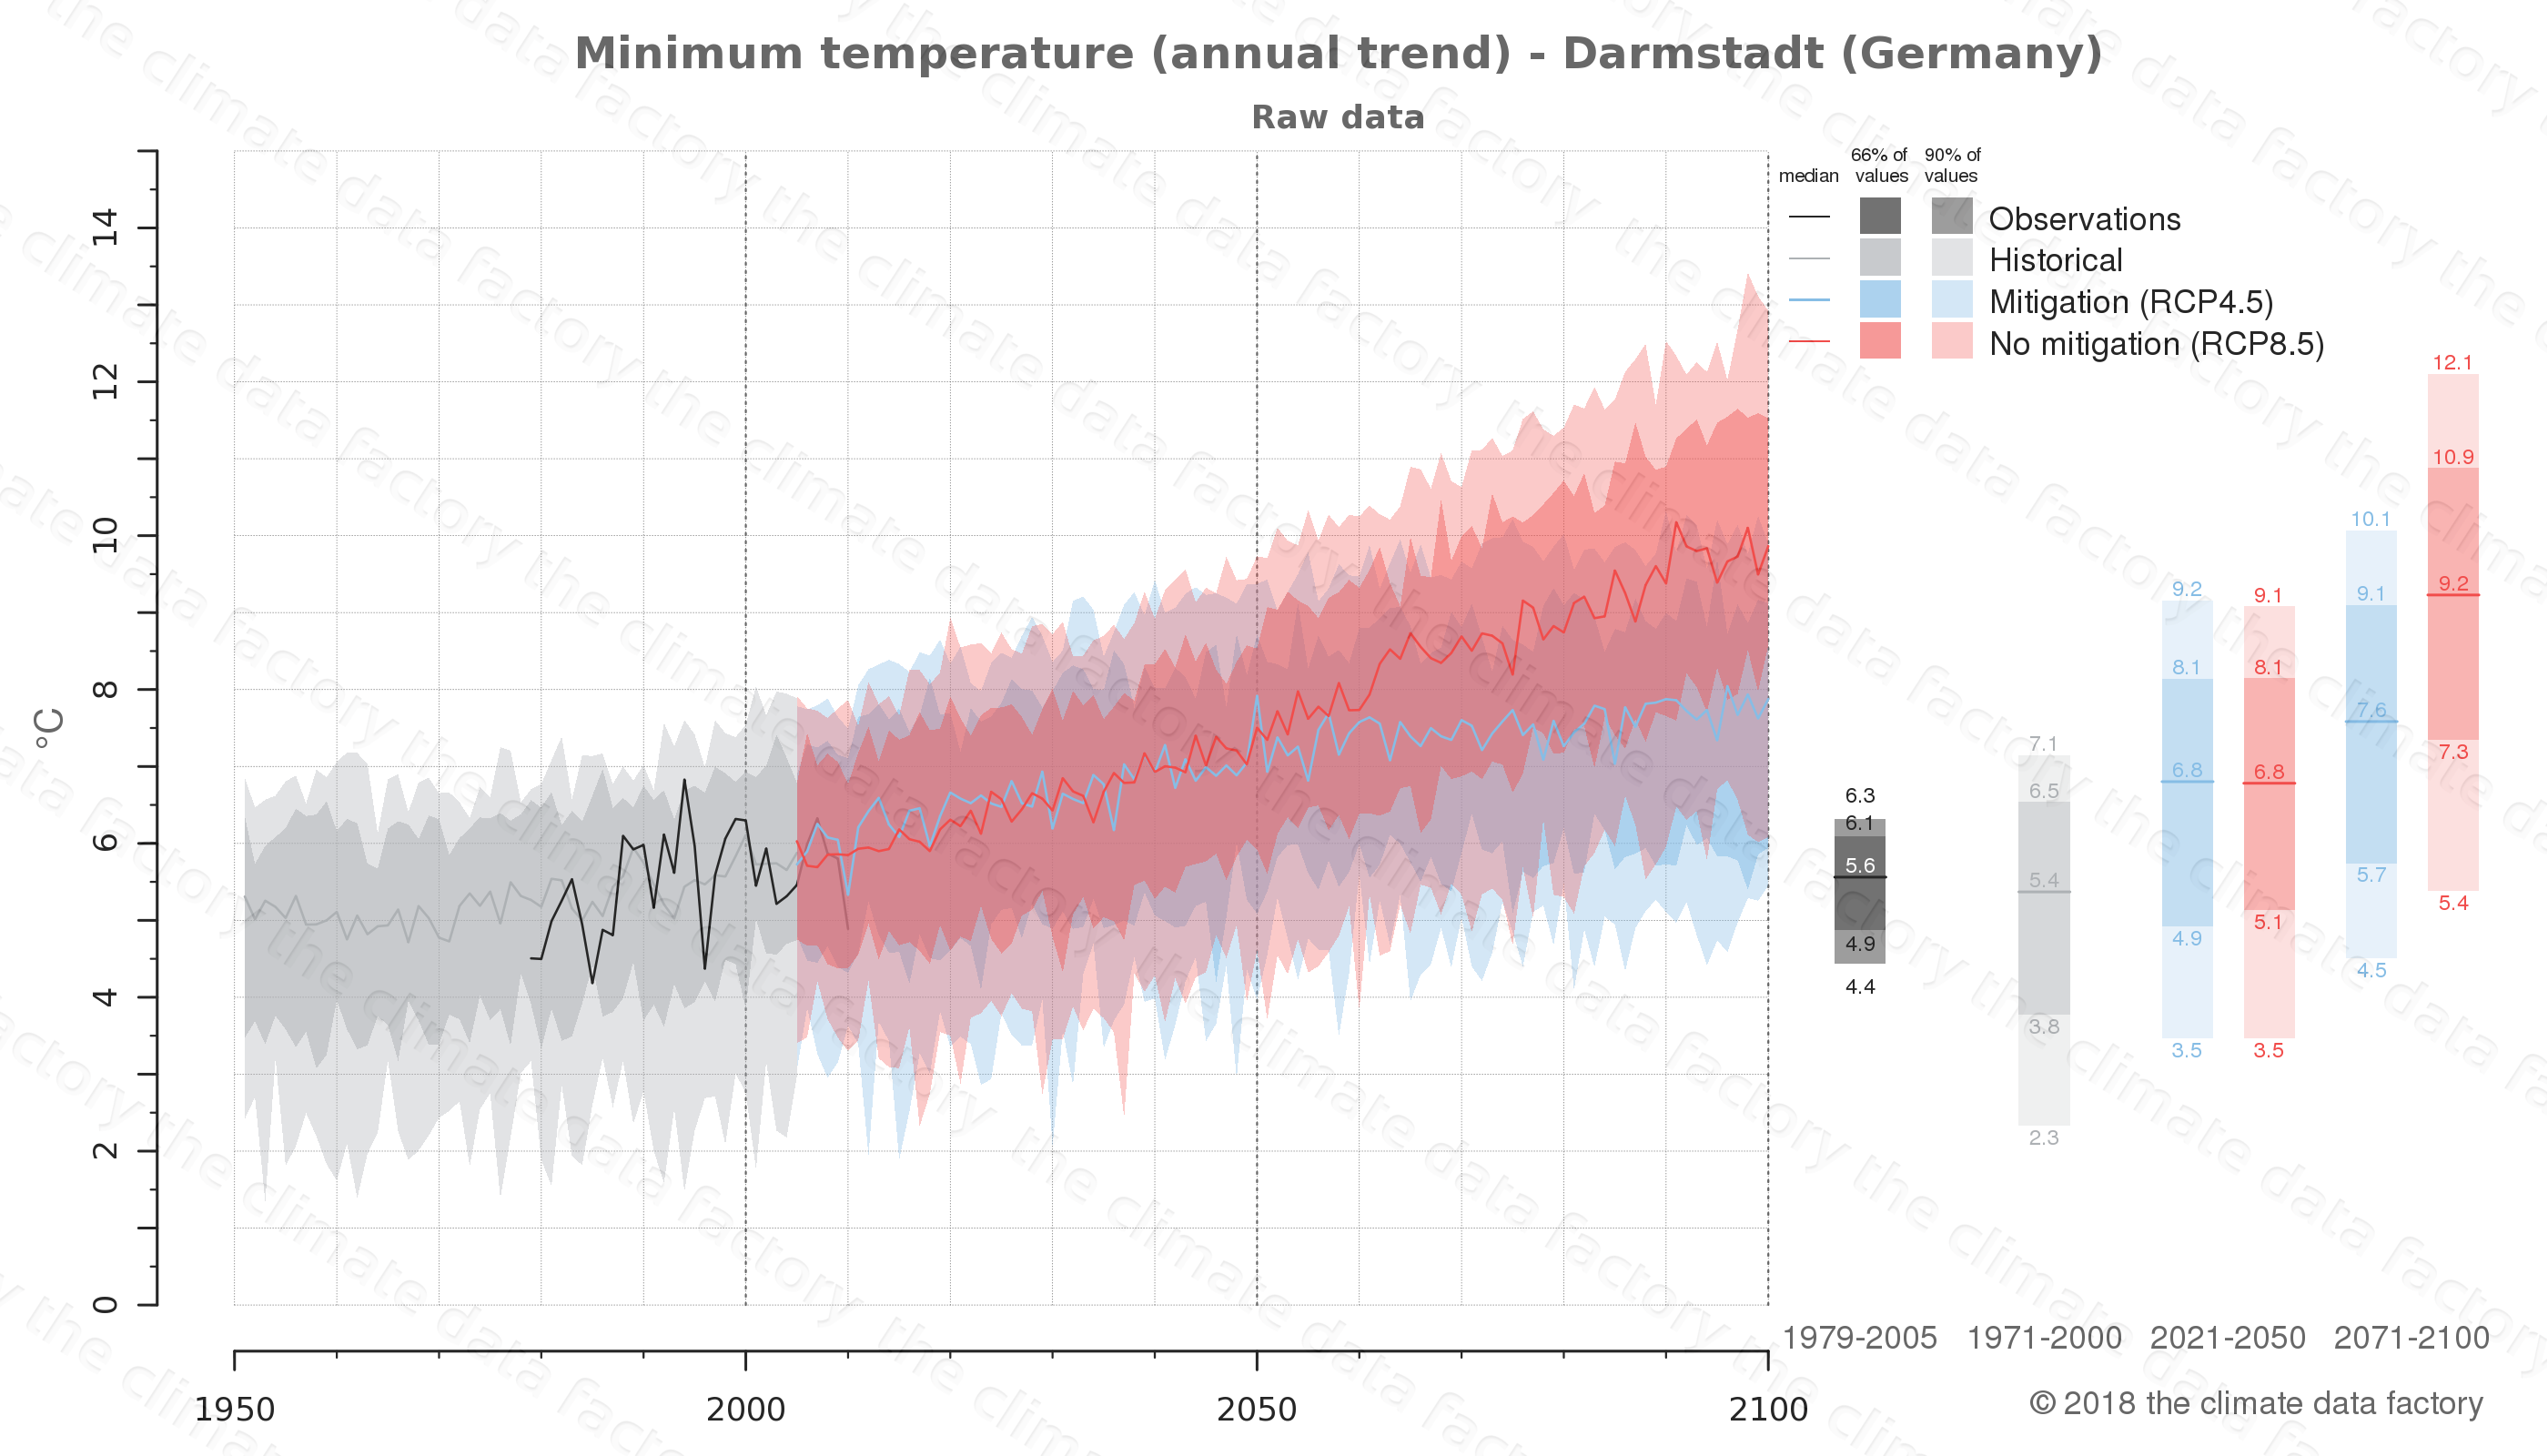 climate change data policy adaptation climate graph city data minimum-temperature darmstadt germany